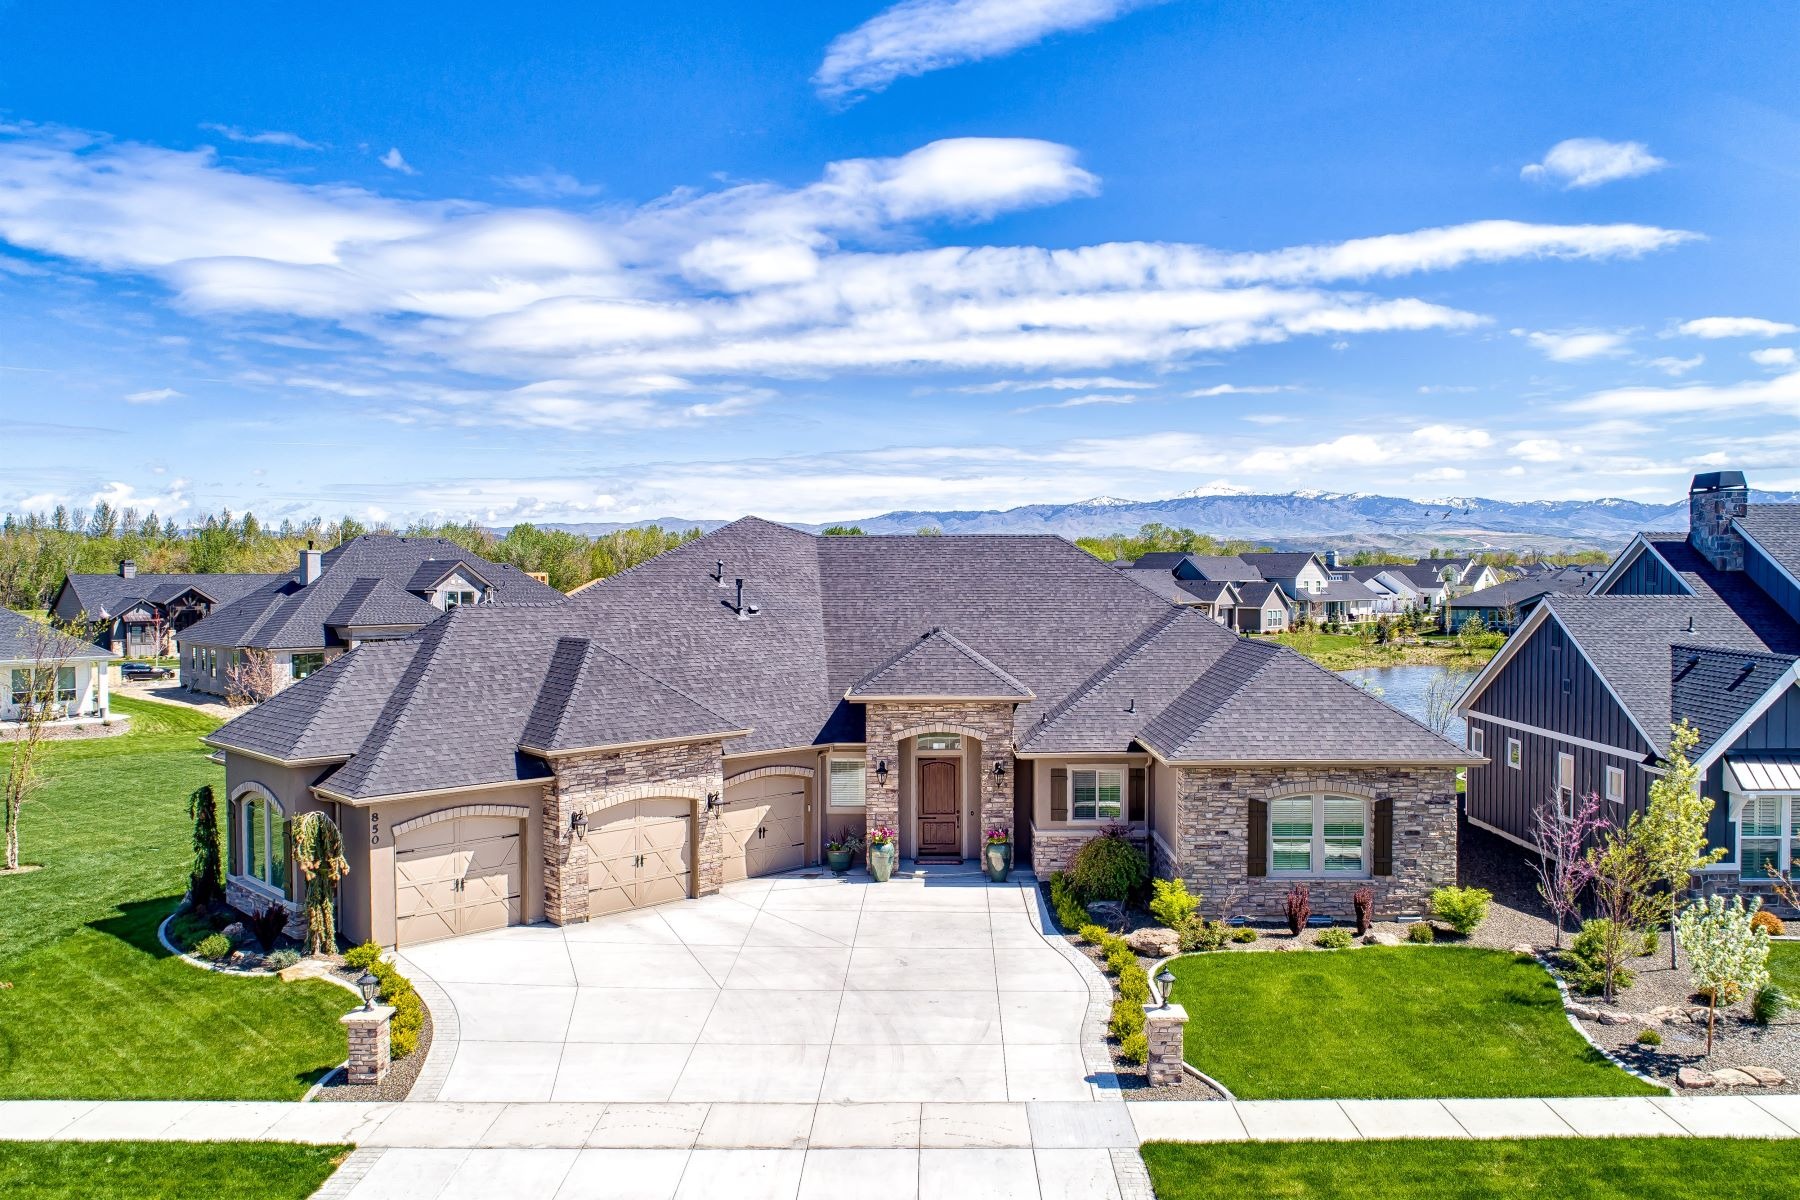 Single Family Homes for Active at 850 Heron Pointe, Eagle 850 S Heron Pointe Eagle, Idaho 83616 United States